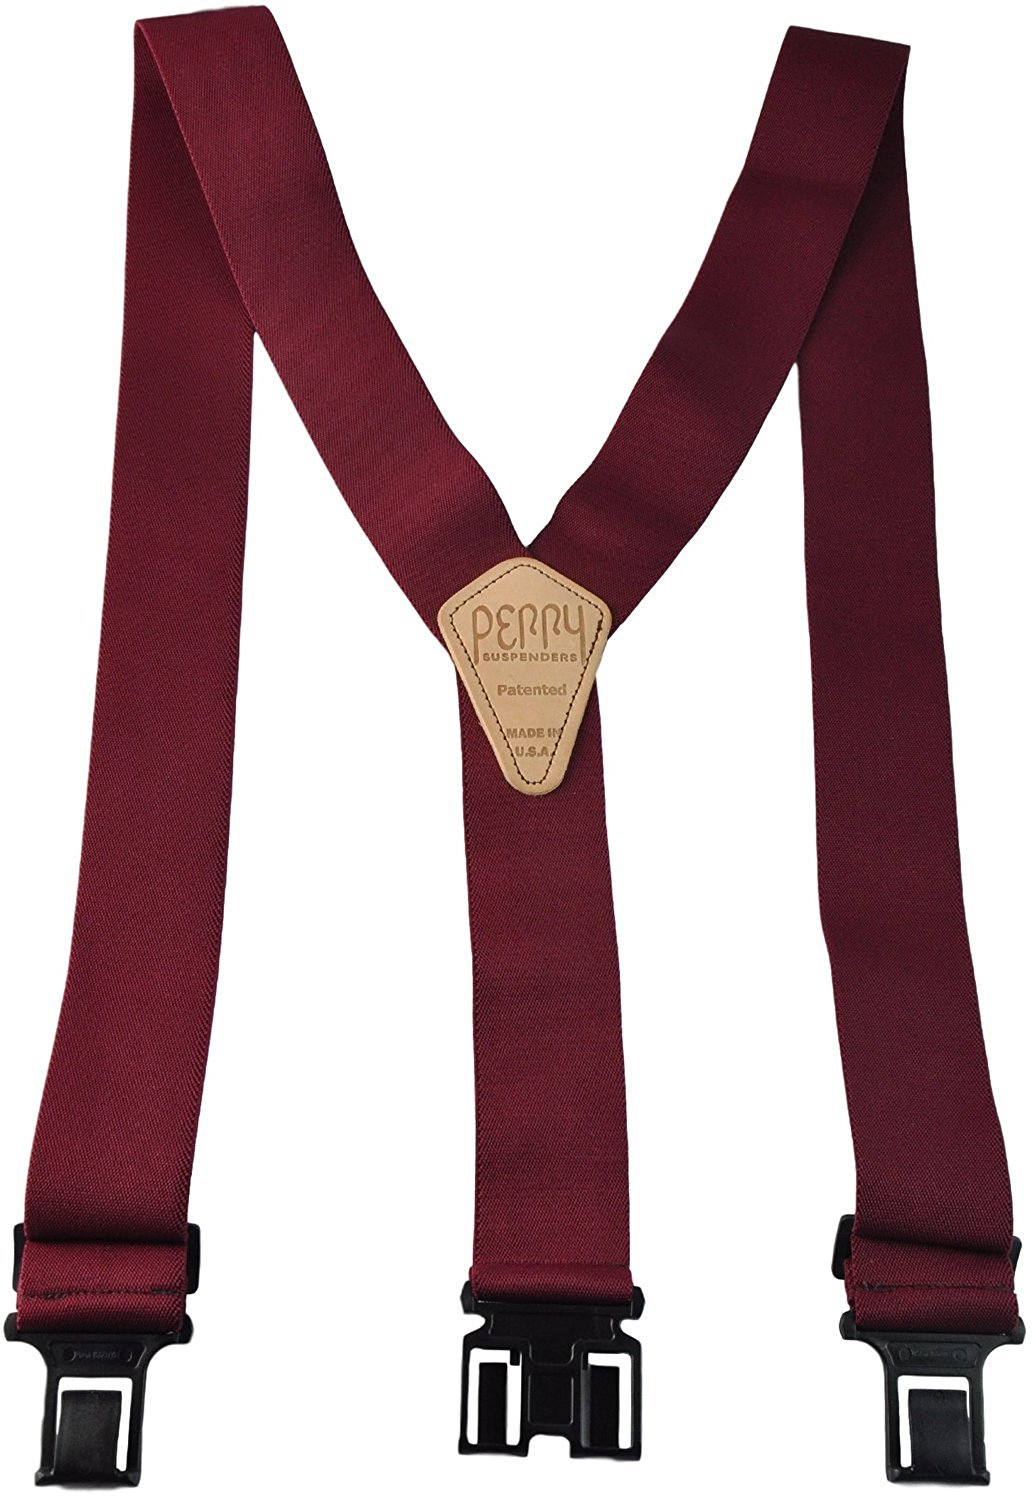 Perry Products SN200 Men's Clip-On 2-in Suspenders(Tall, Burgandy)